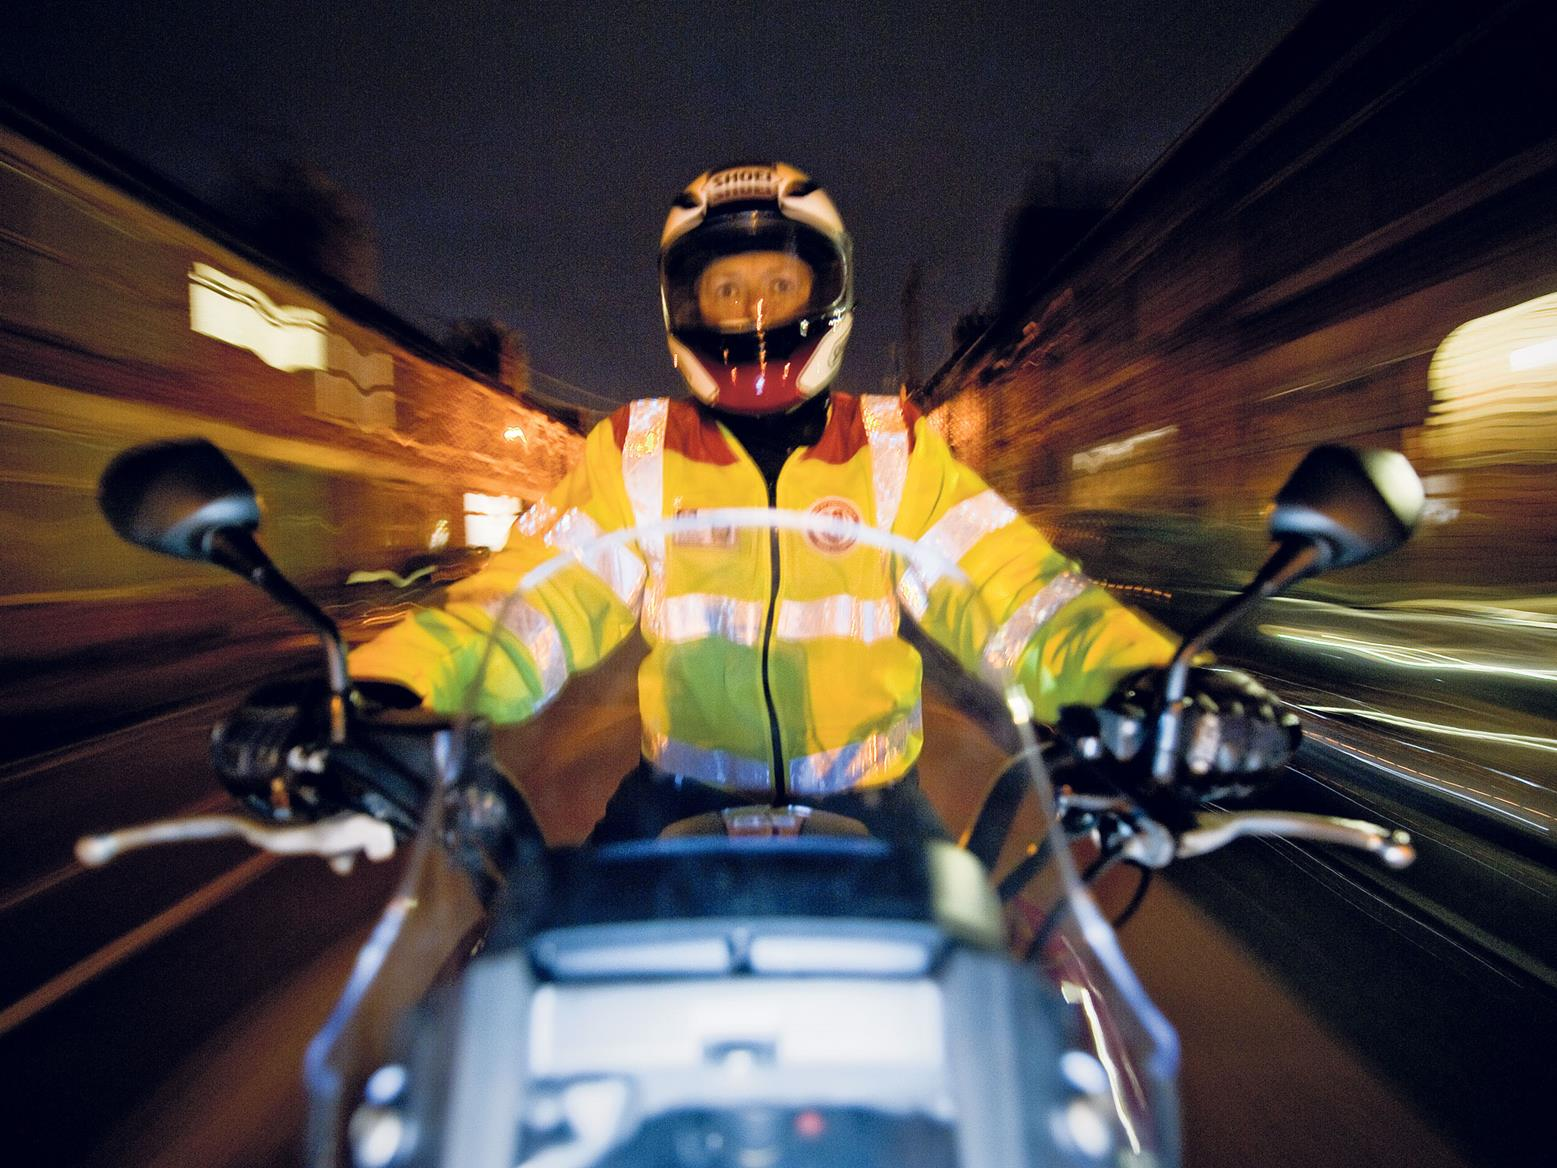 It's important to keep your helmet visor clear when riding at night